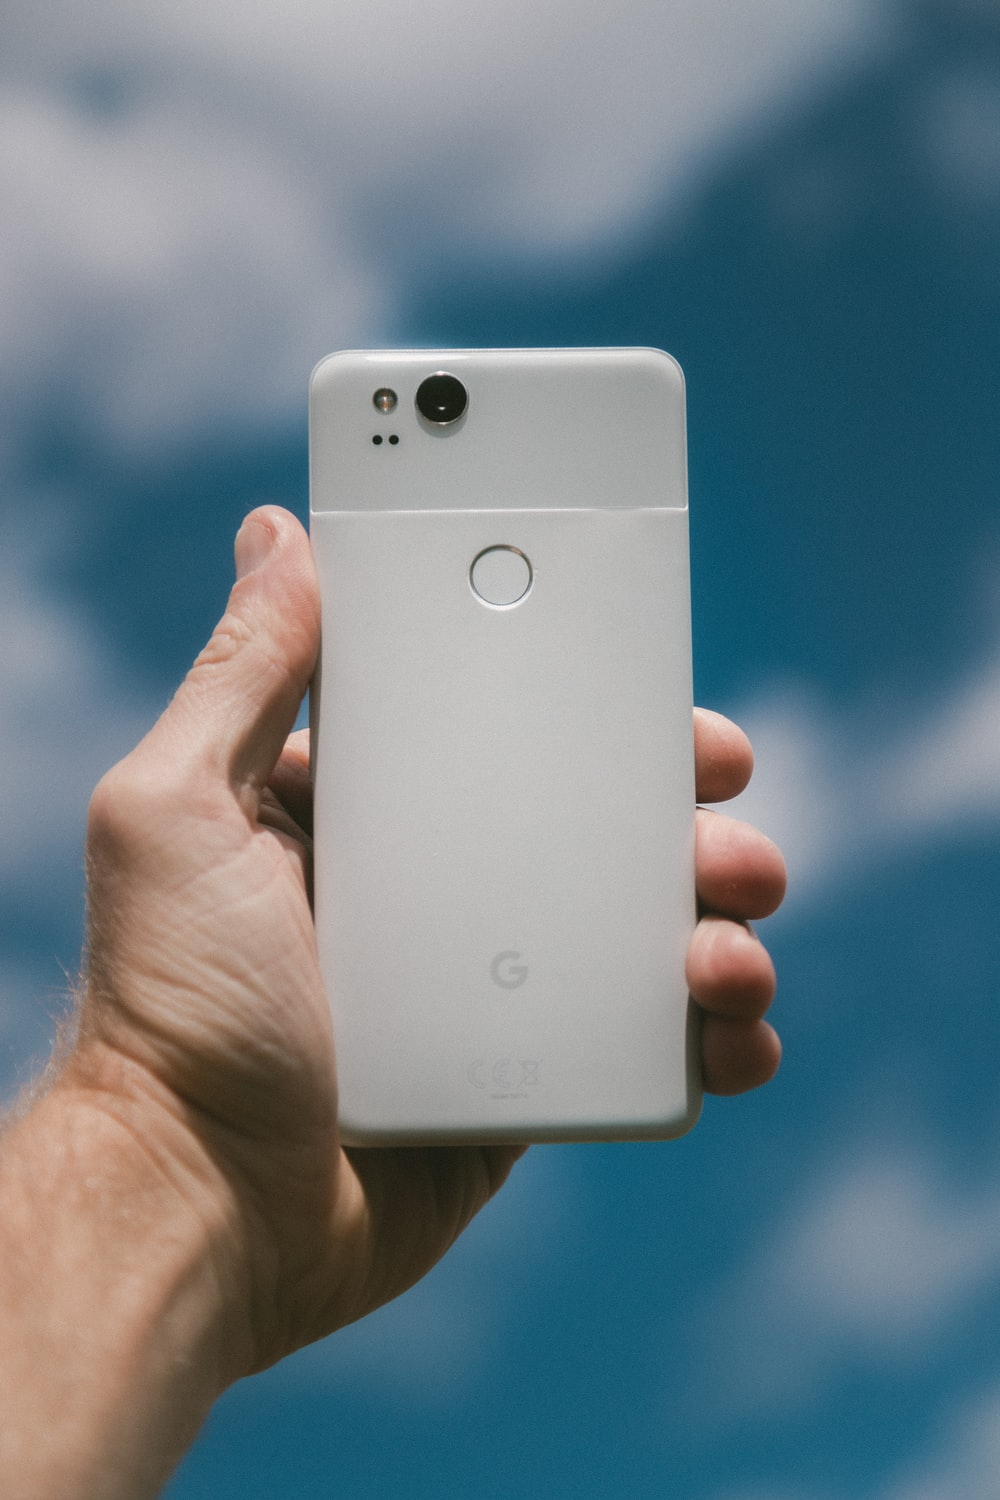 person holding white Google Android smartphone